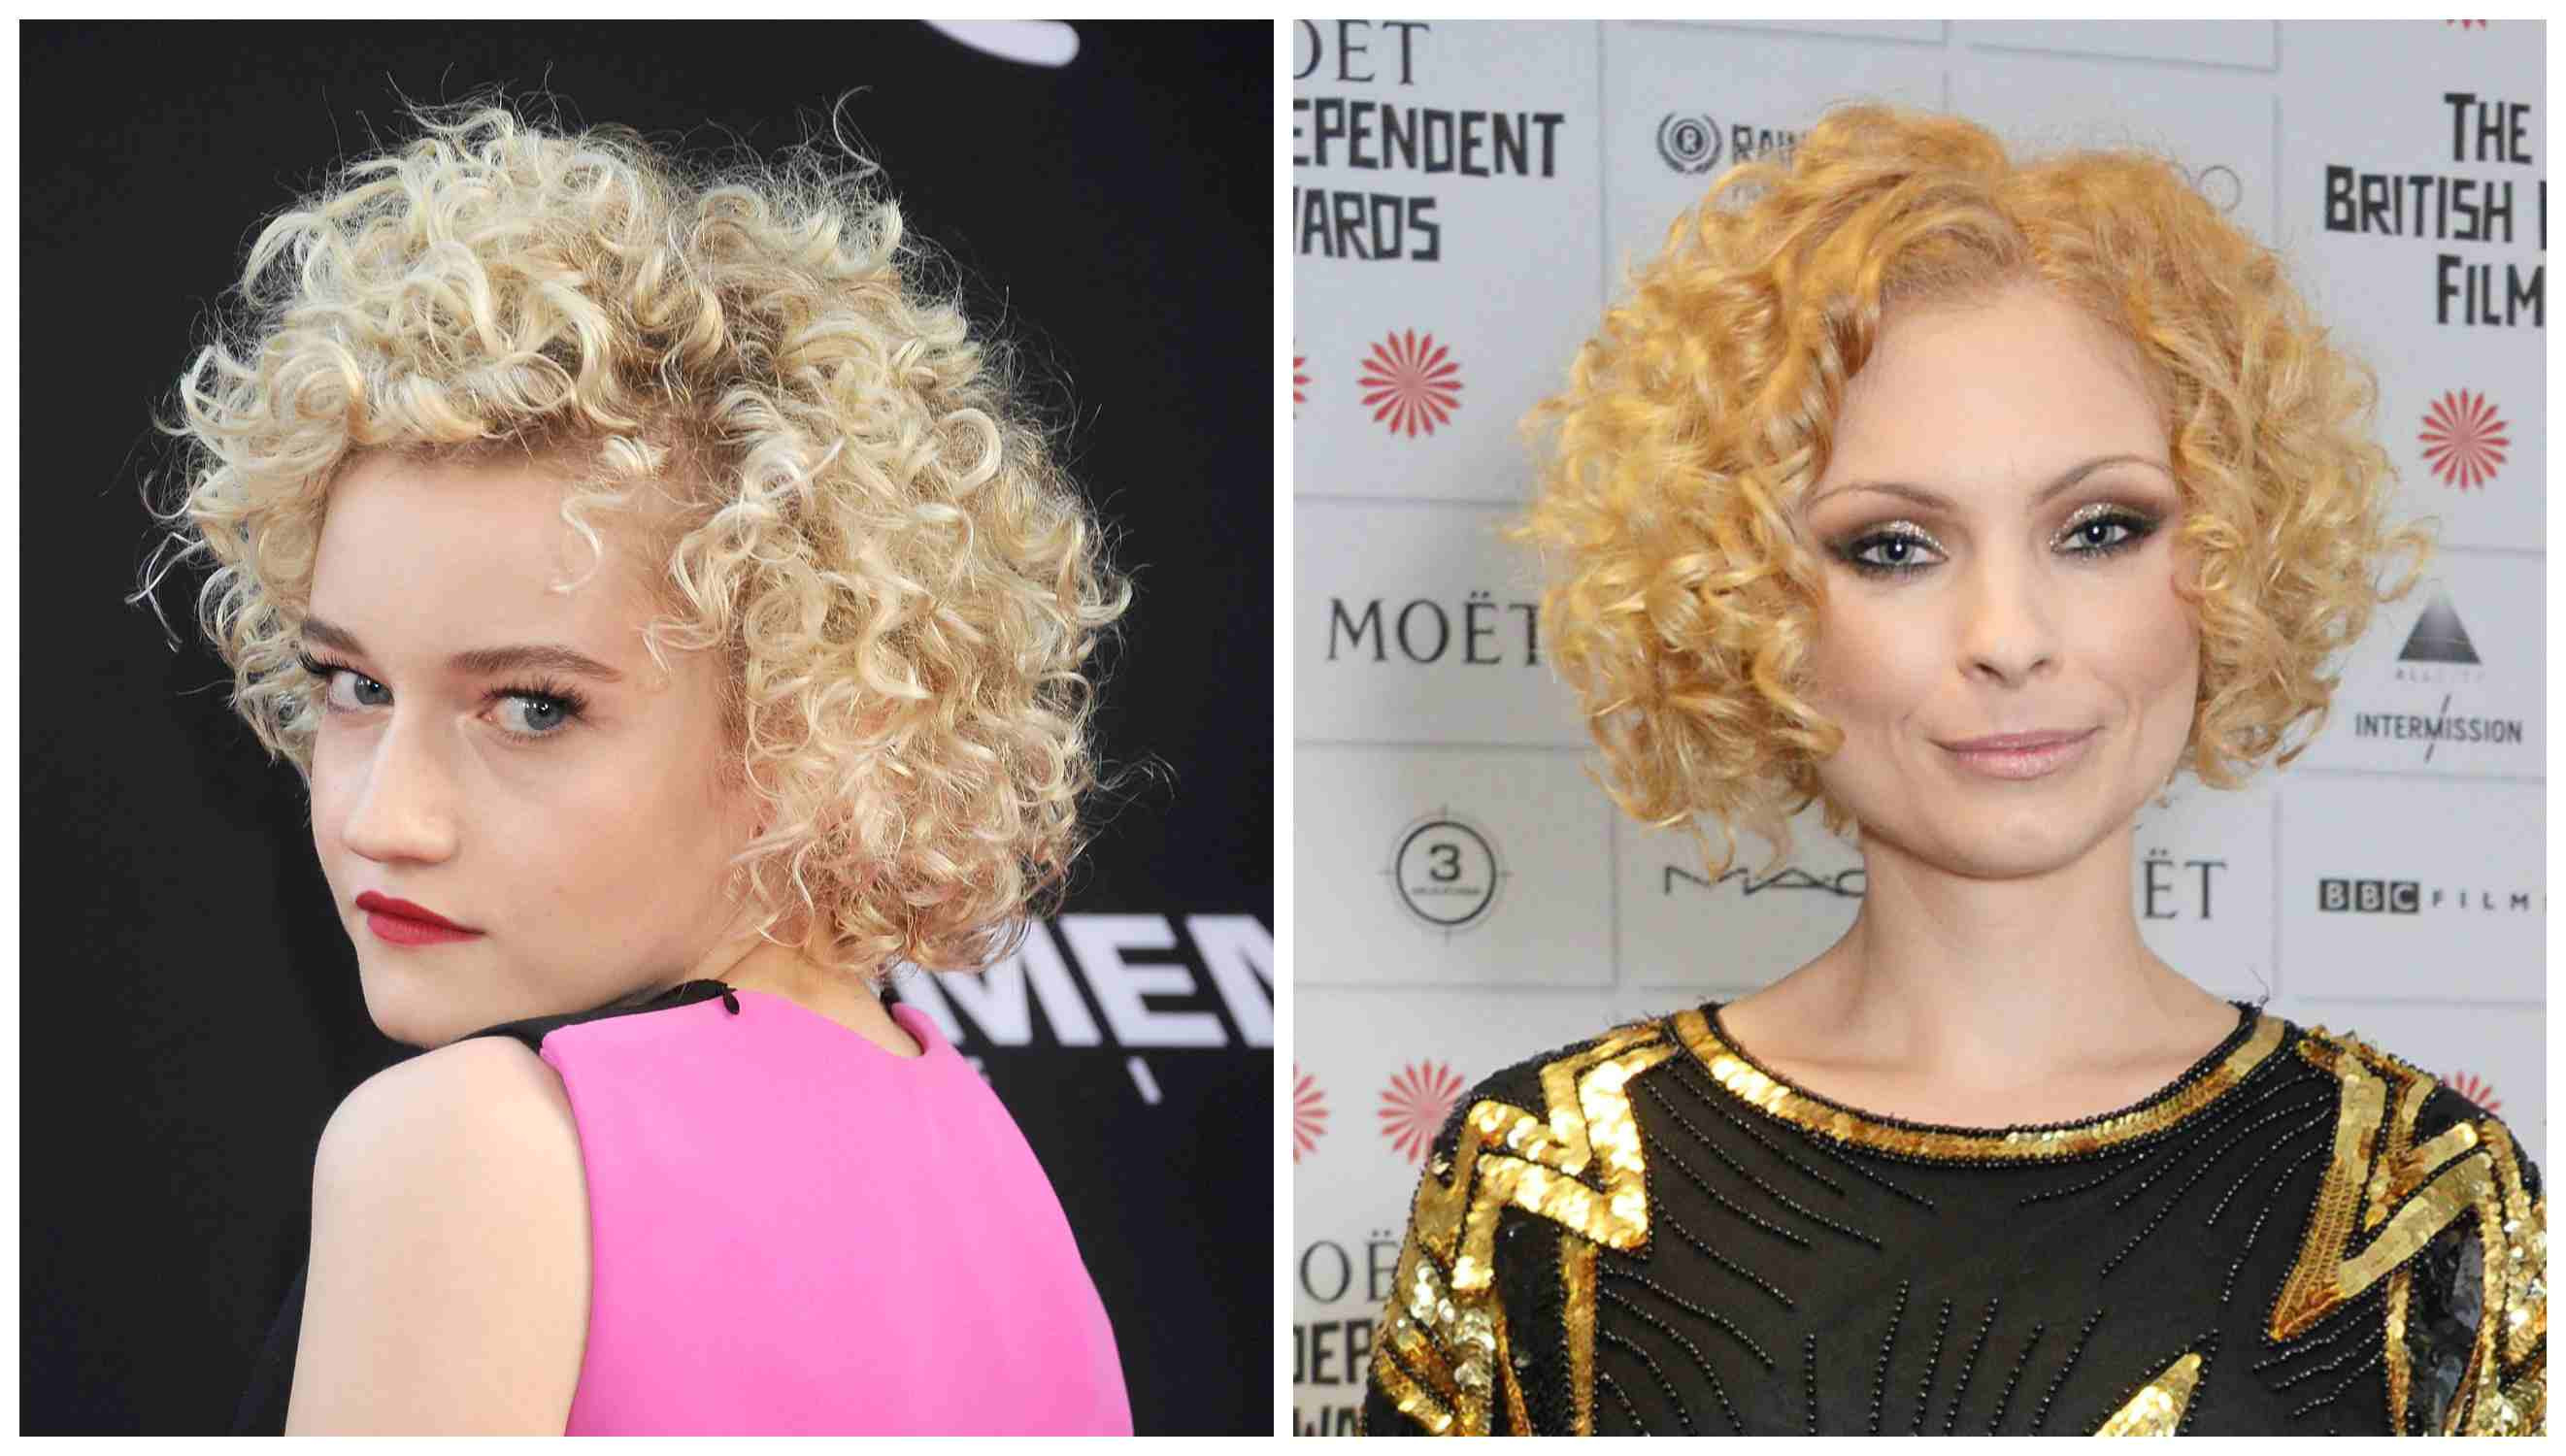 Hairstyles for Short Blonde Curly Hair 18 Short Curly Hairstyles that Prove Curly Can Go Short